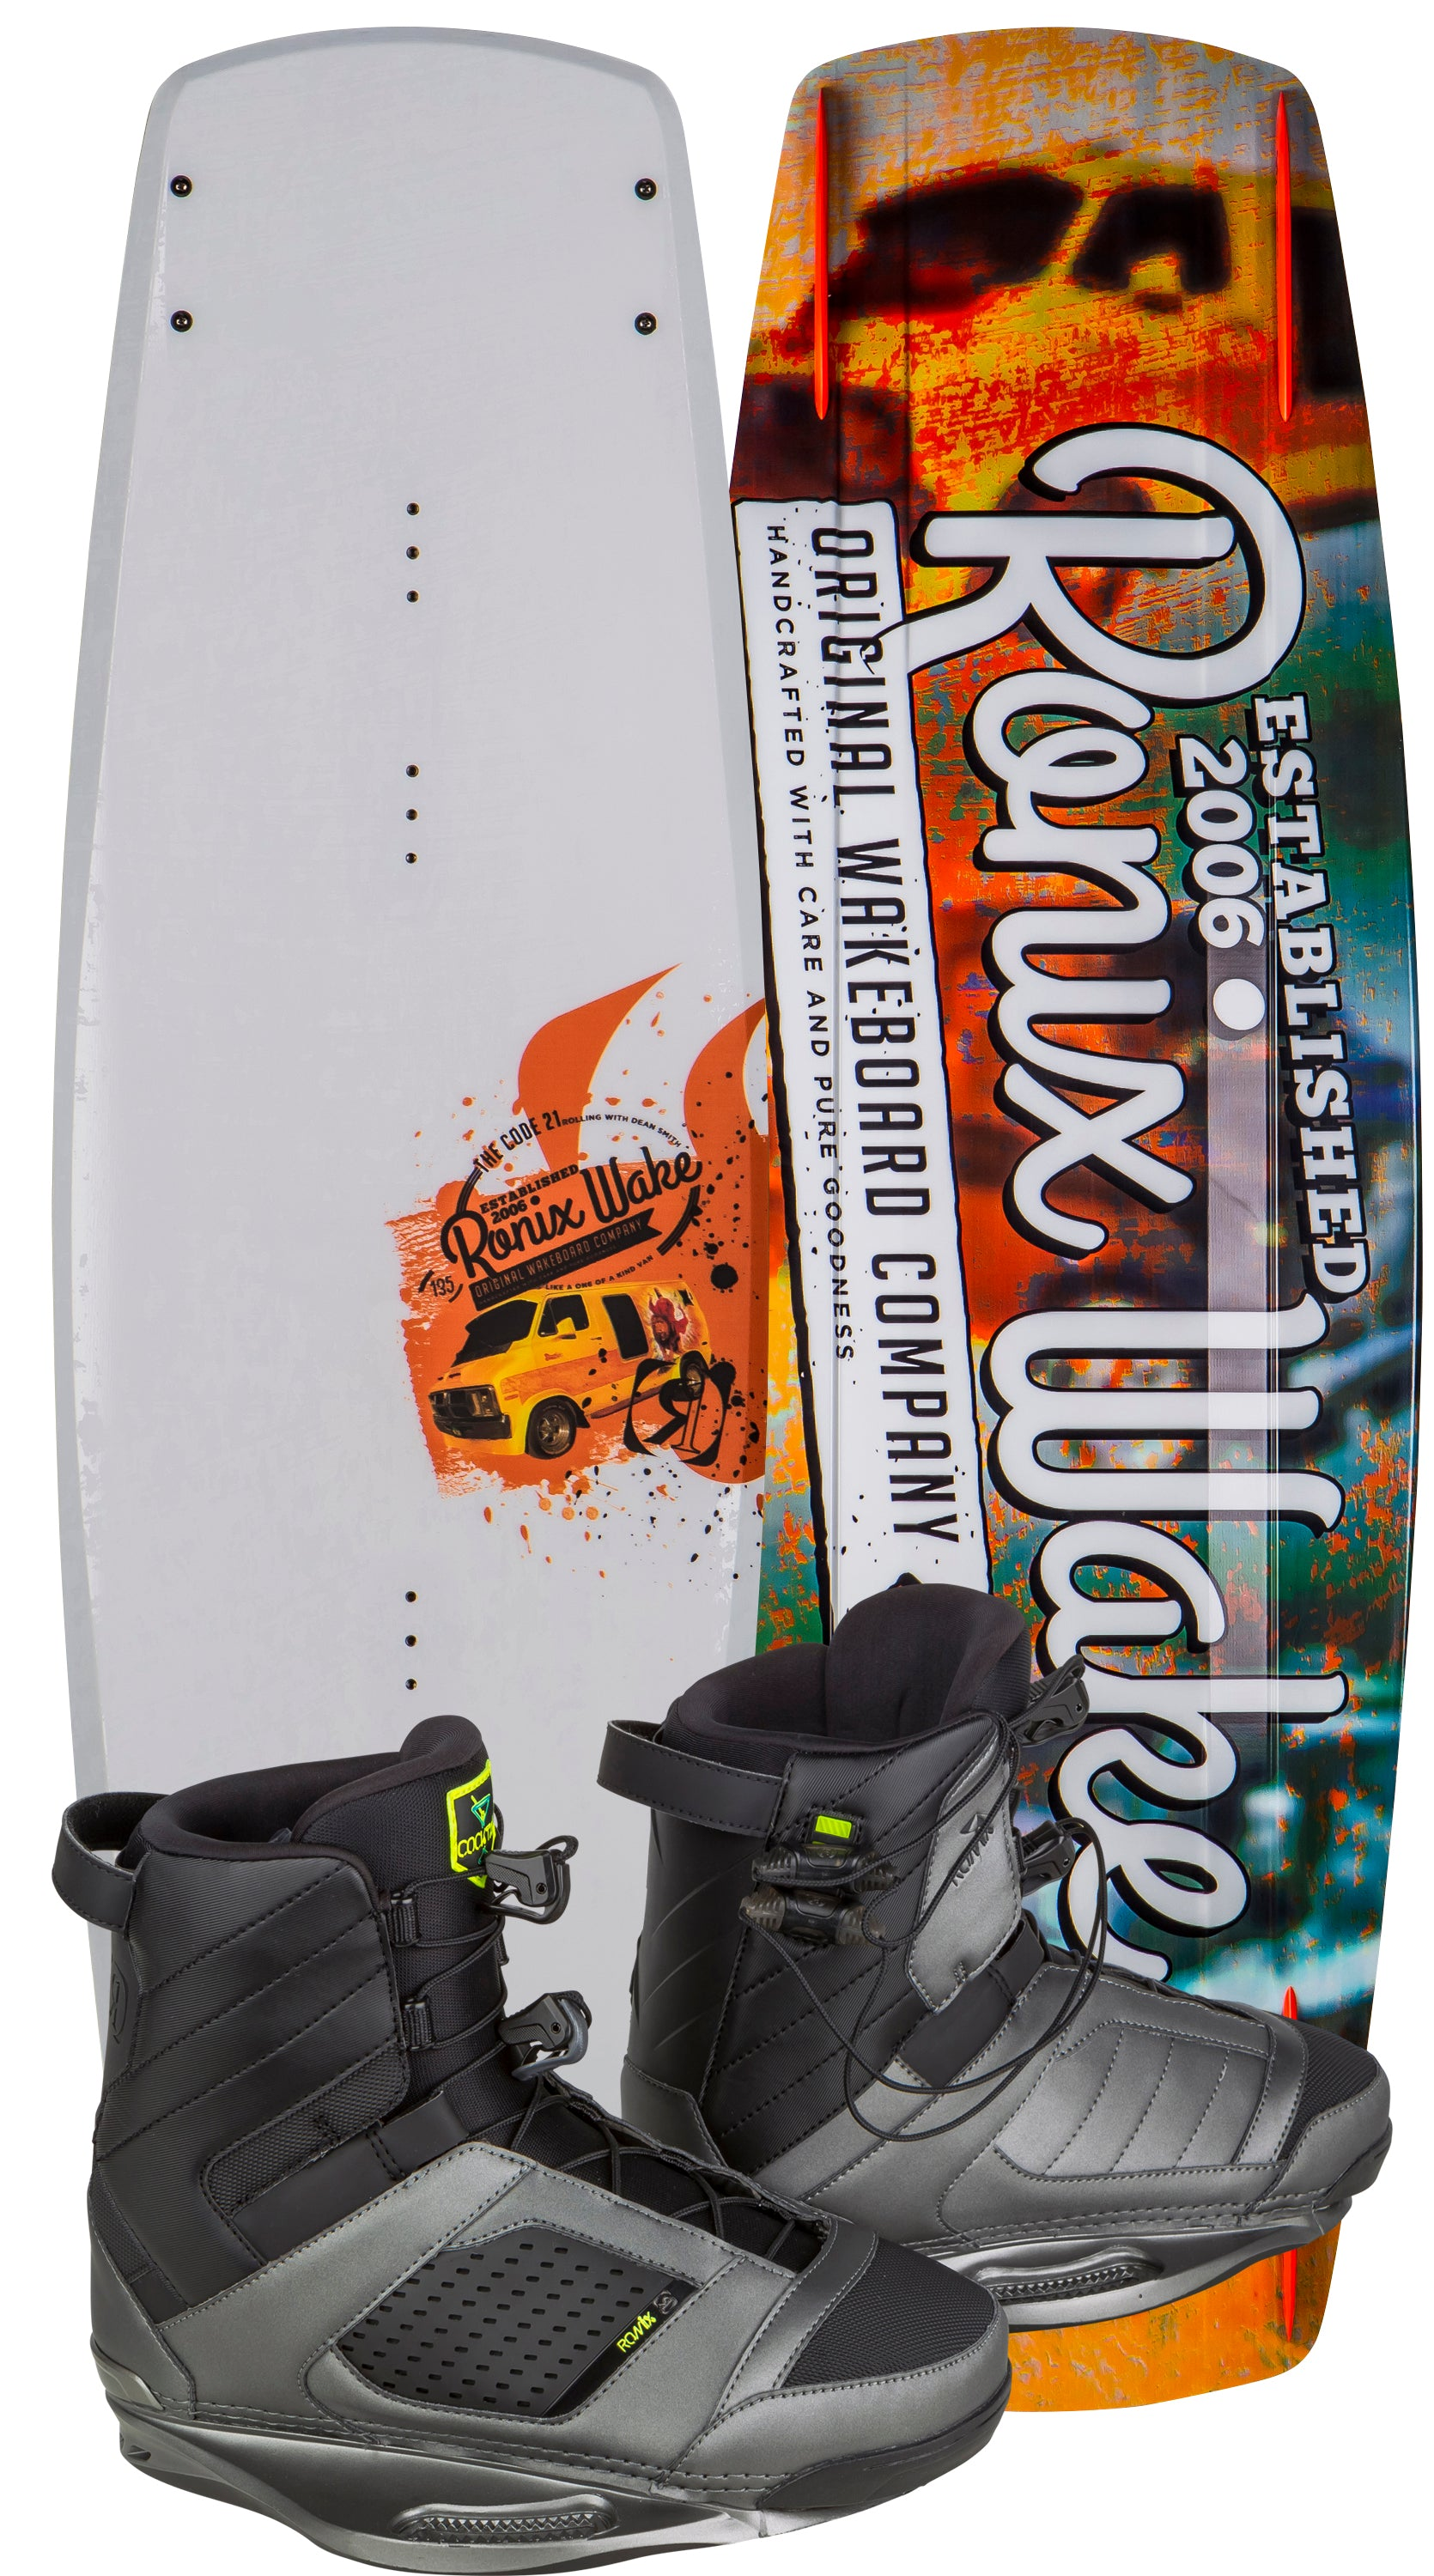 buy the best selling wakeboard packages